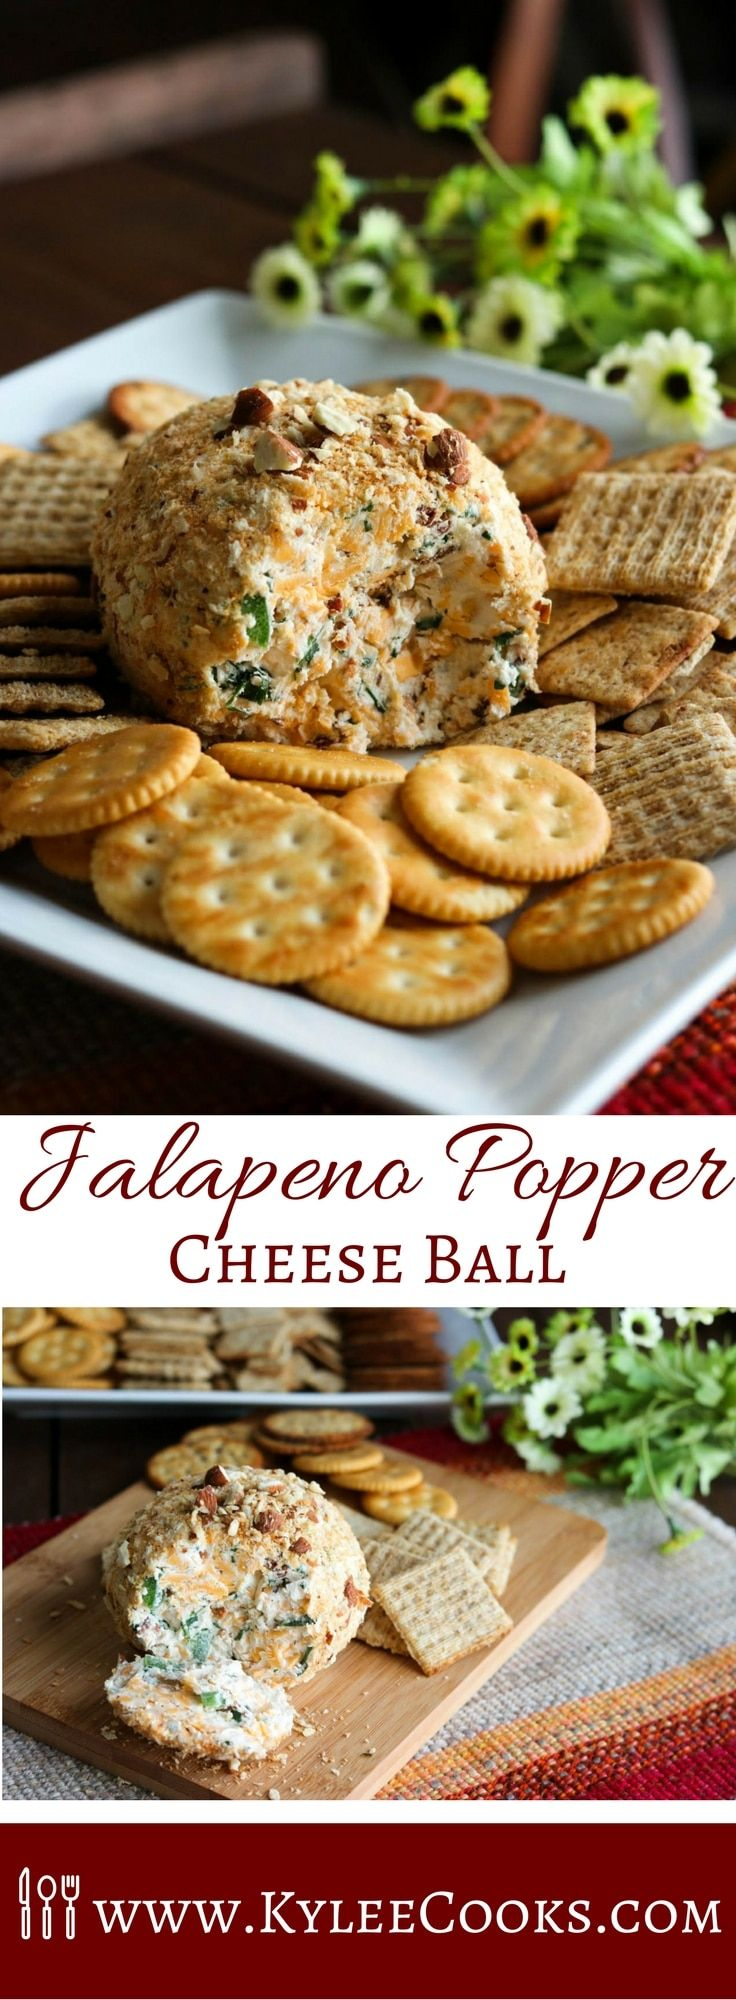 Jalapeno Popper Cheese Ball Recipe (with Video)